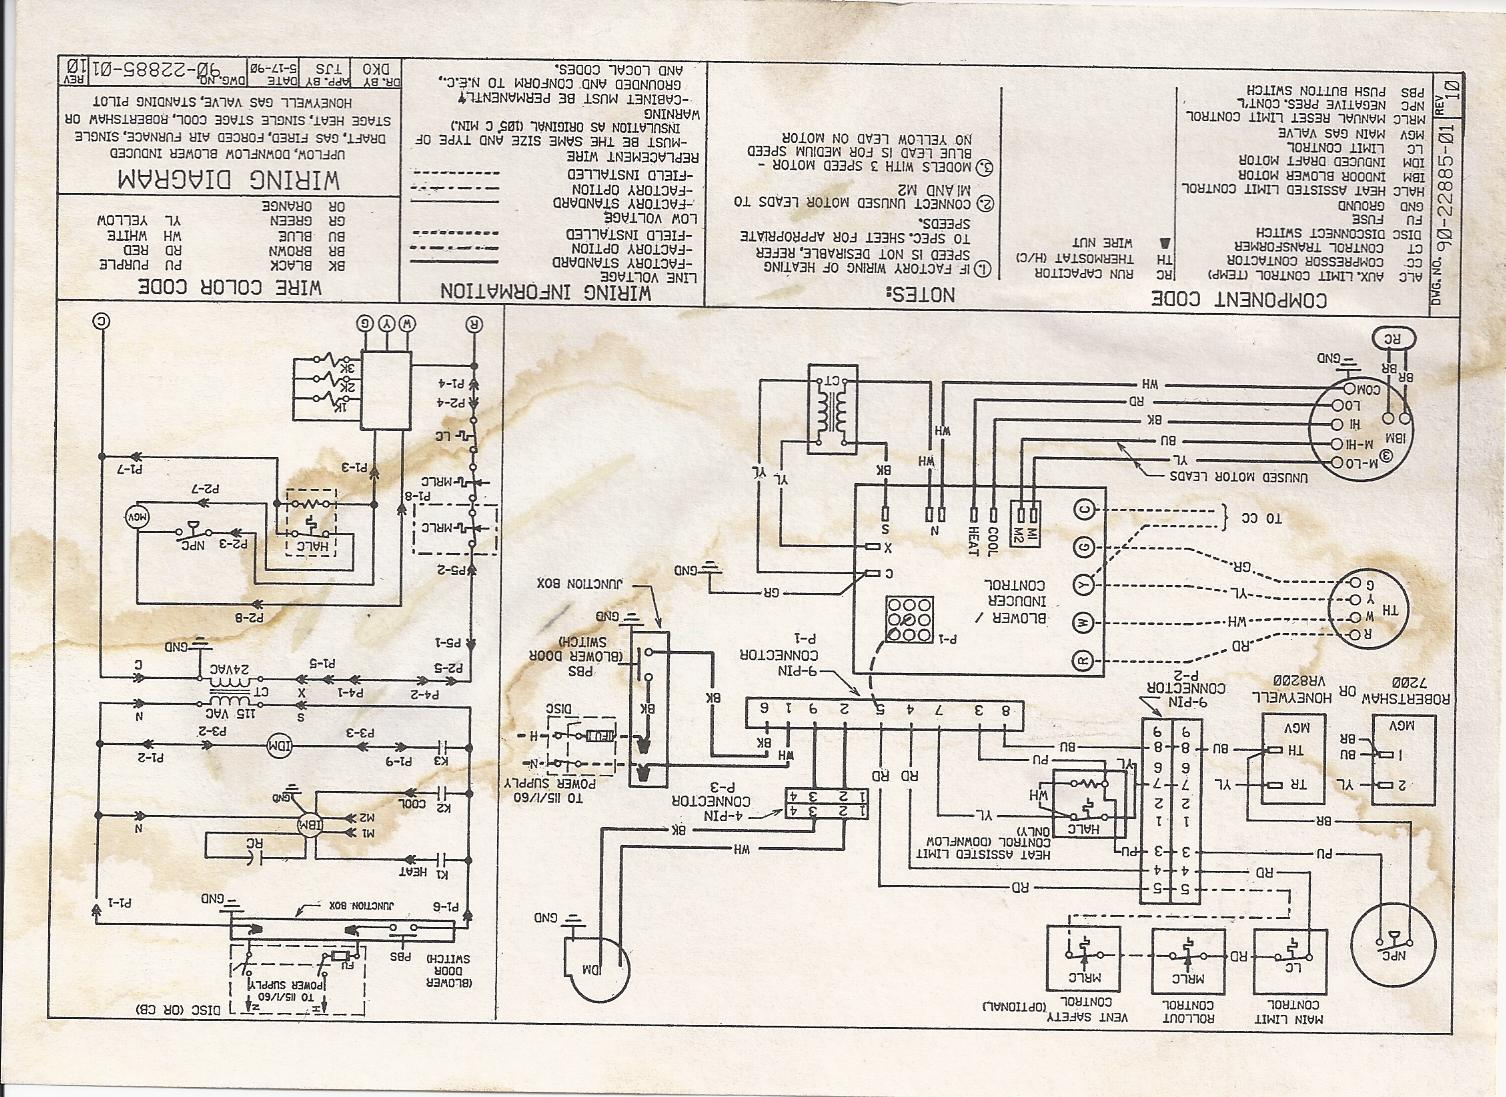 old oil furnace wiring diagram my ruud indoor blower runs all the time, i have been told ... old carrier furnace wiring diagram